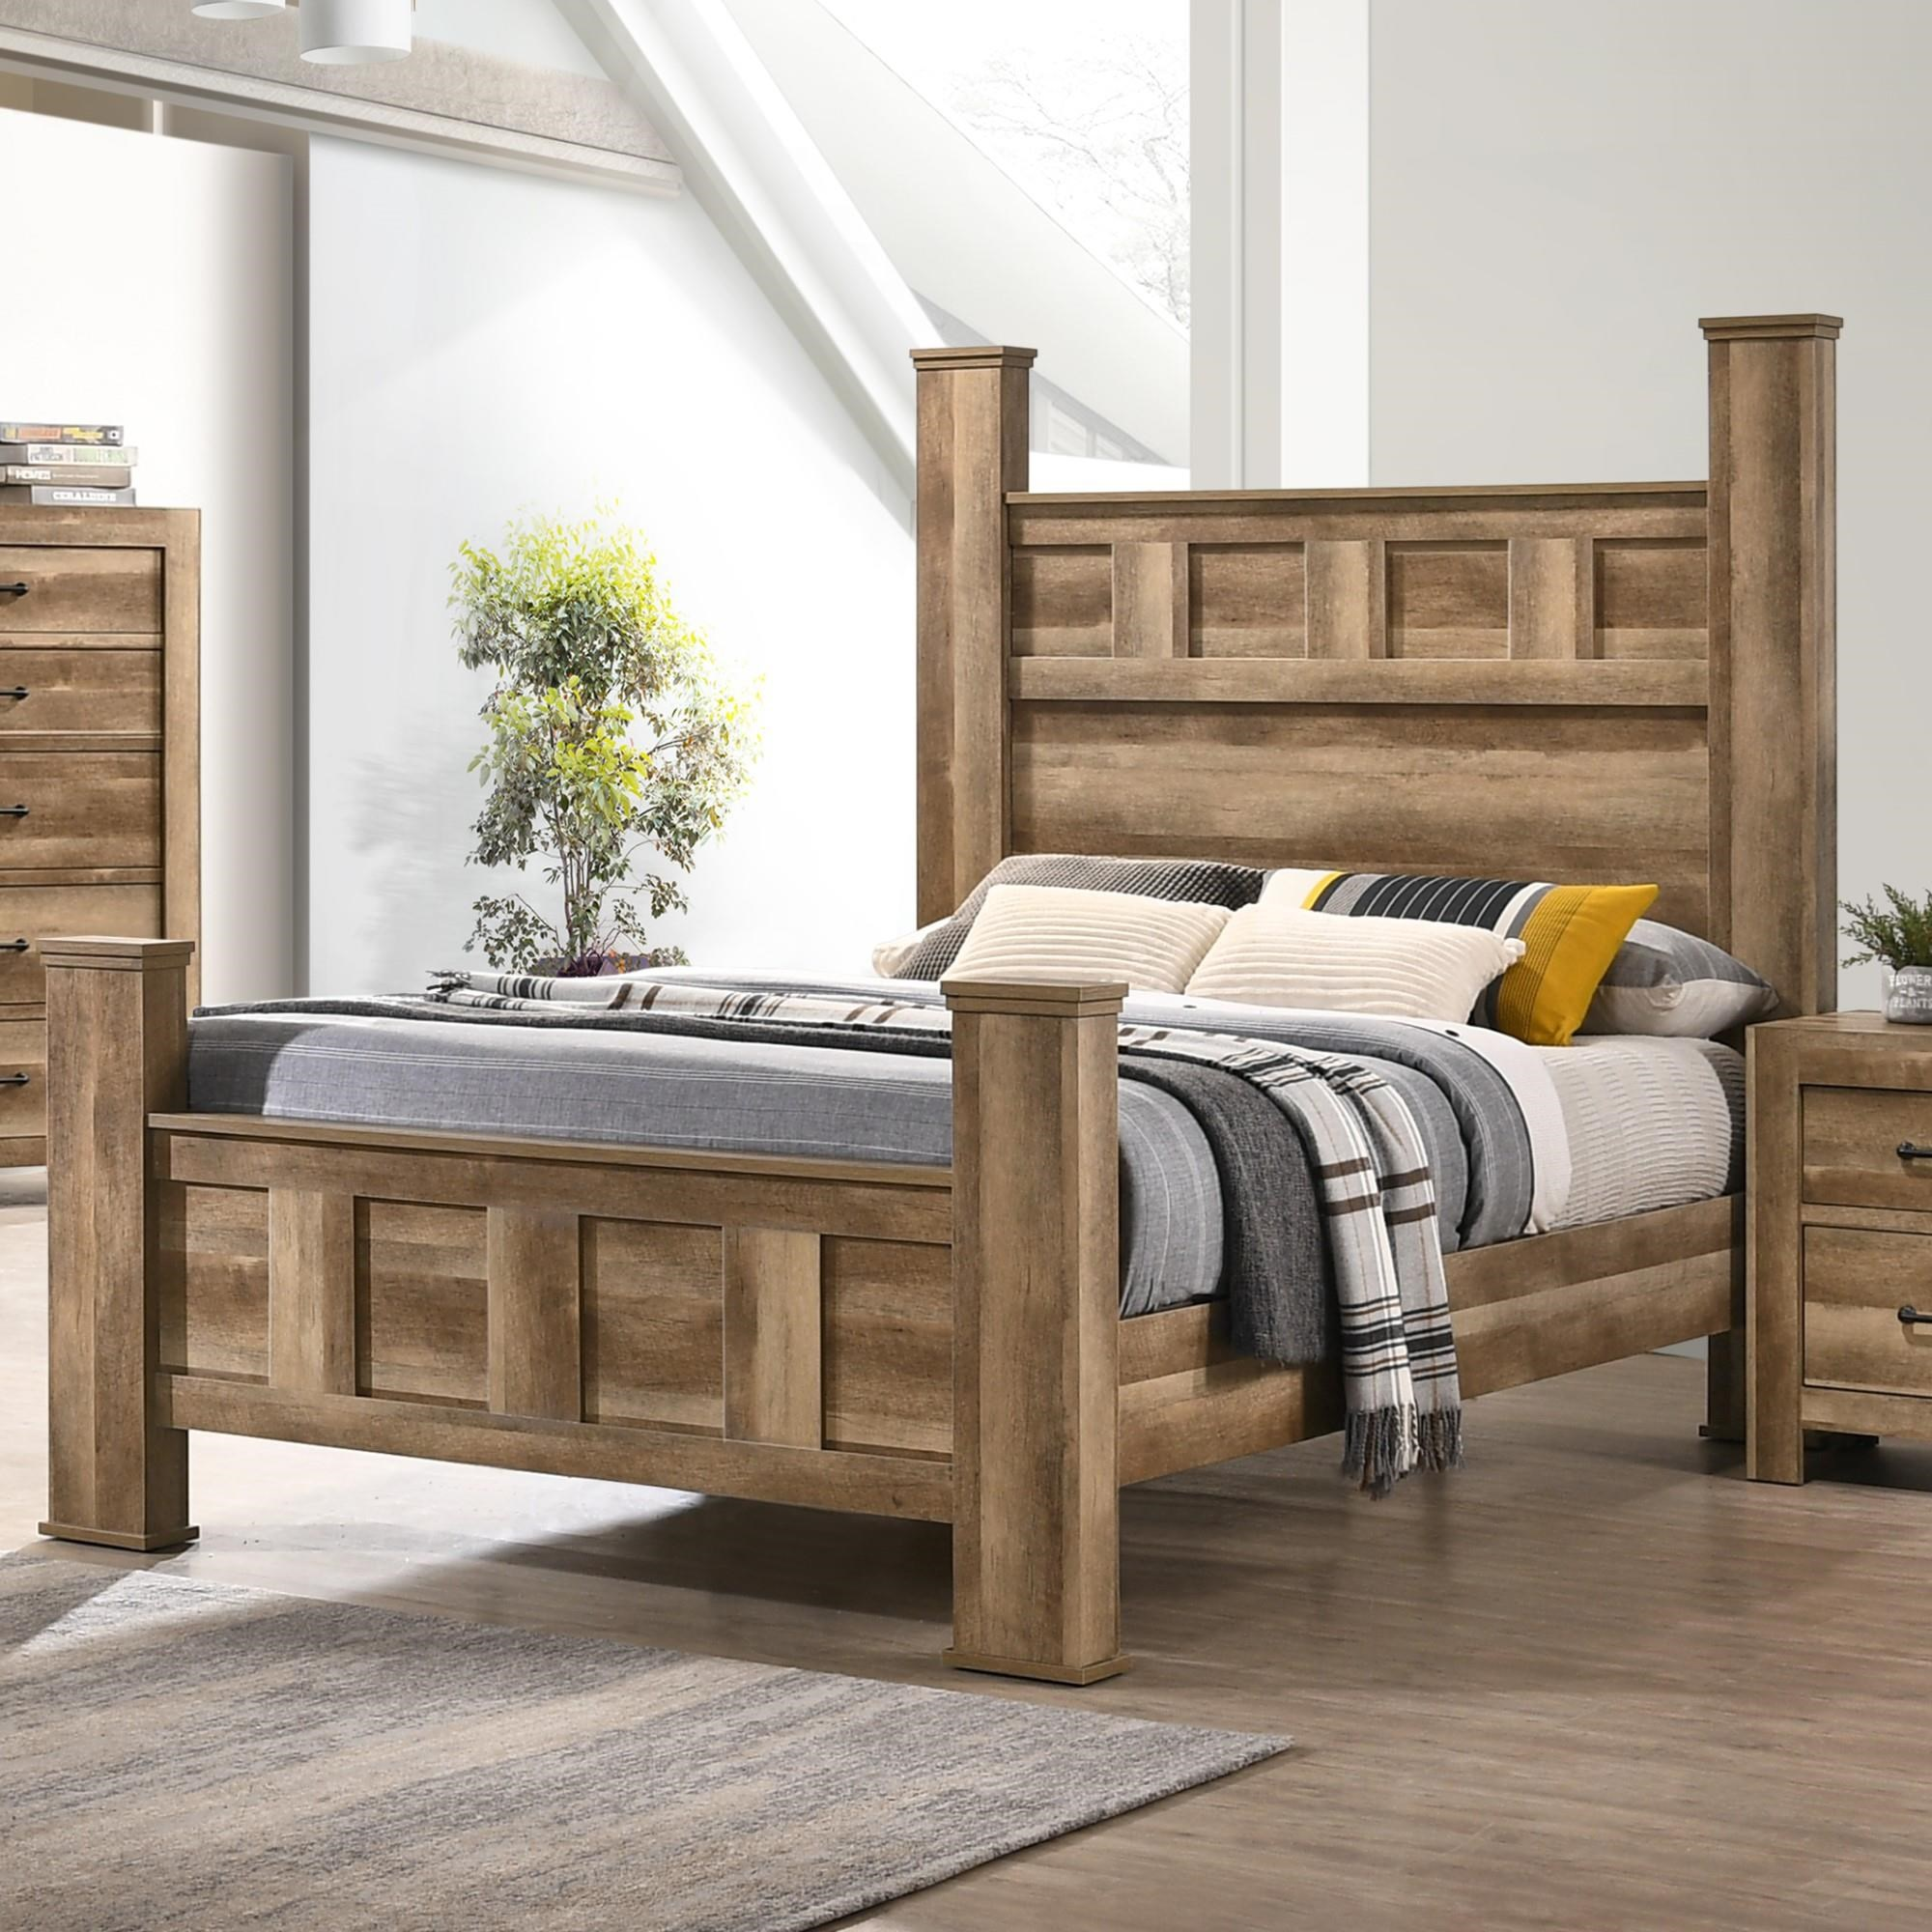 Elements Salerno Queen Post Bed Royal Furniture Poster Beds